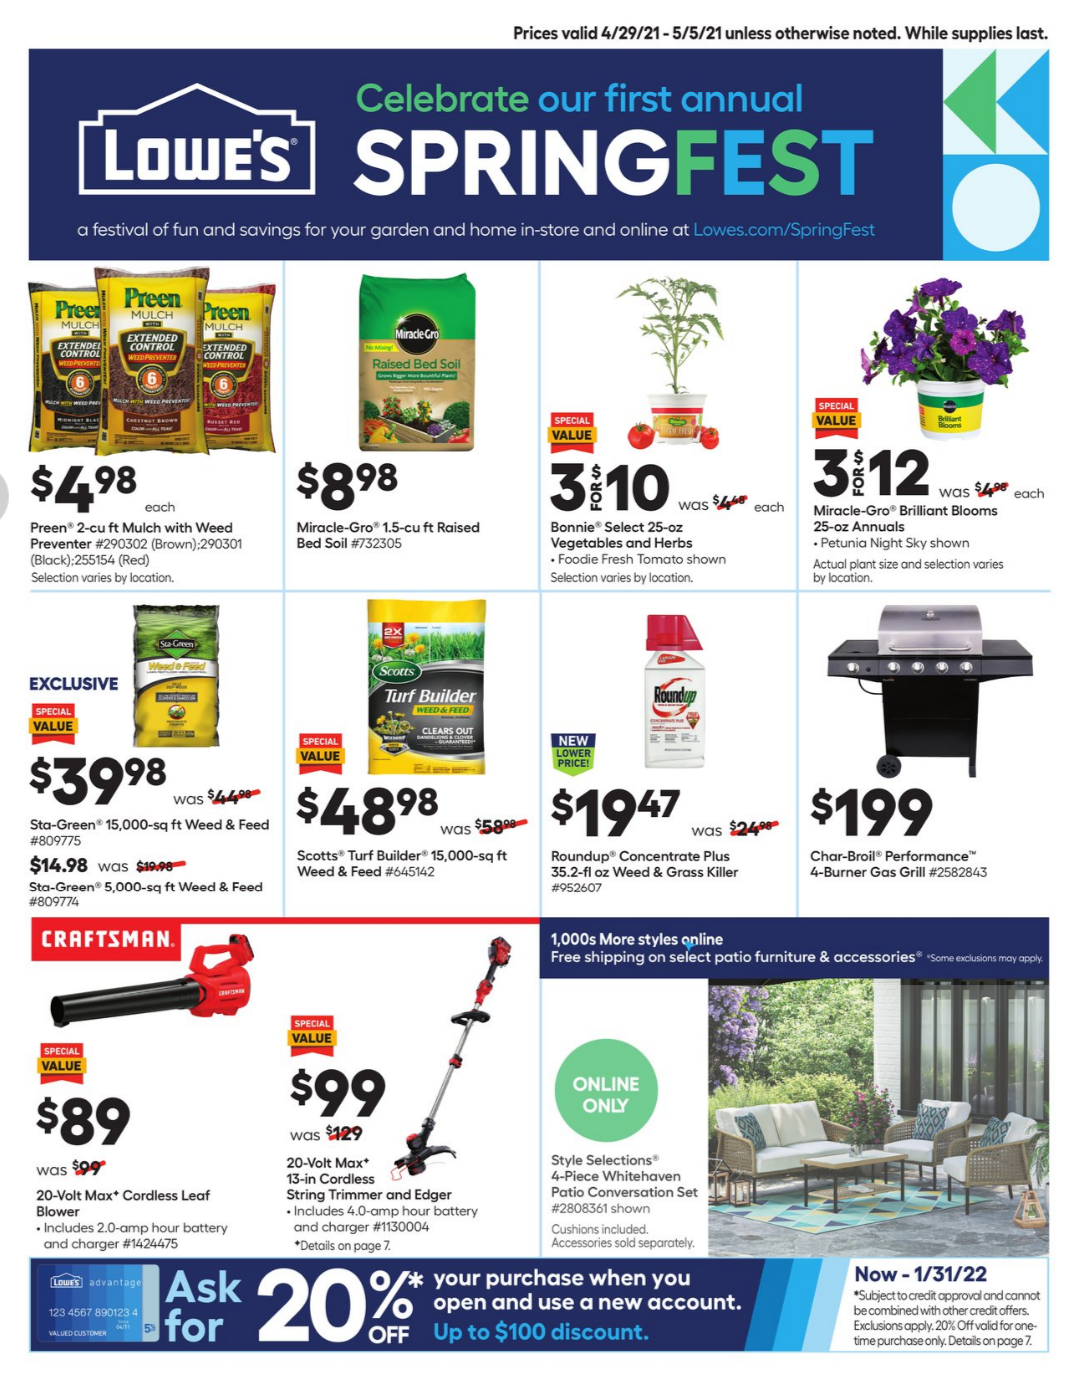 Lowes Weekly Ad Apr 29 – May 5, 2021 Sneak Peek Preview